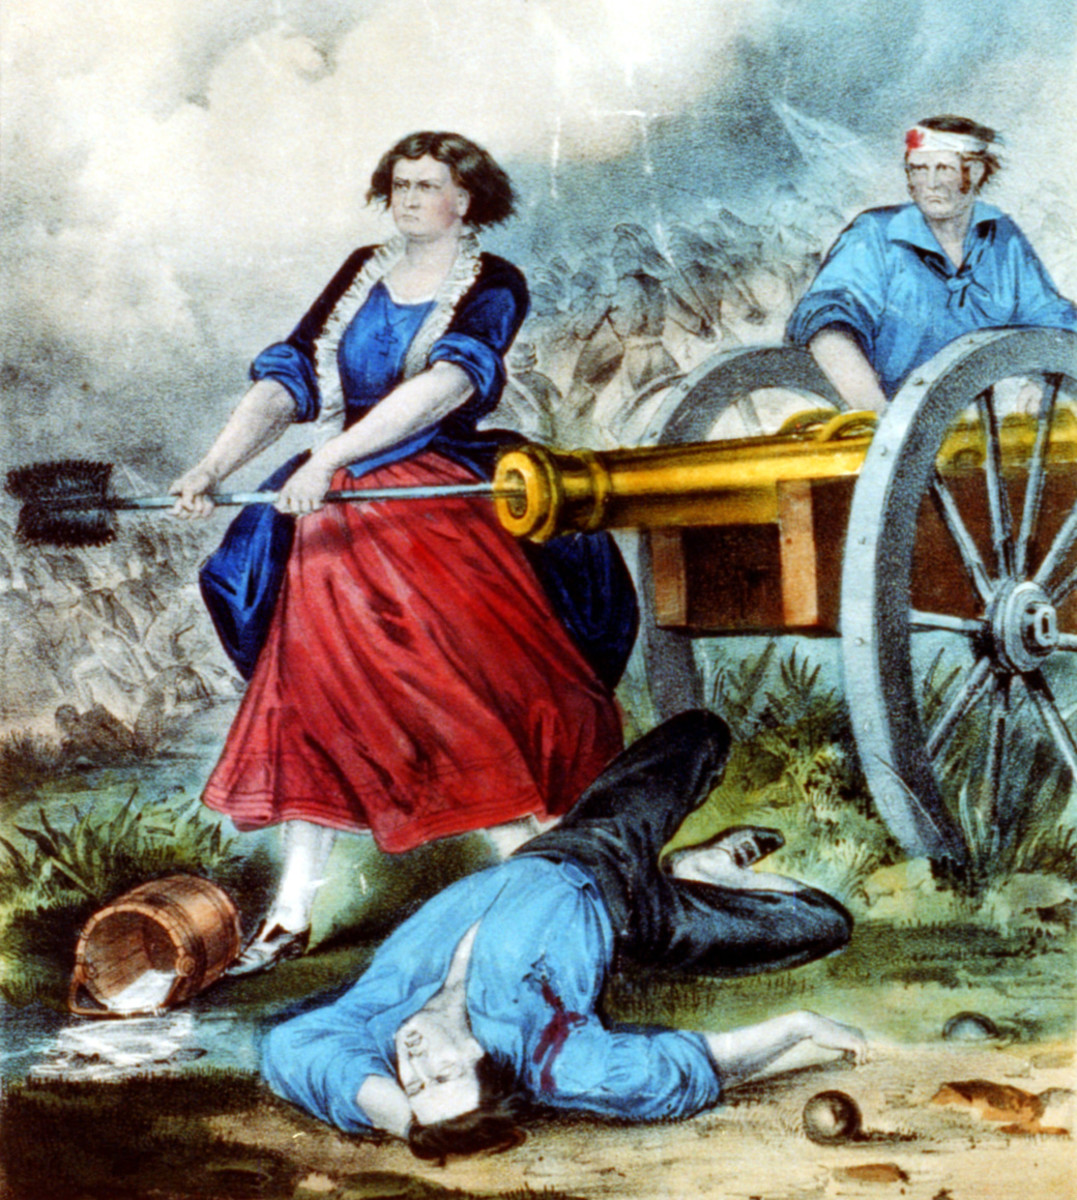 Molly Pitcher, published by Currier & Ives, between 1856 and 1907.